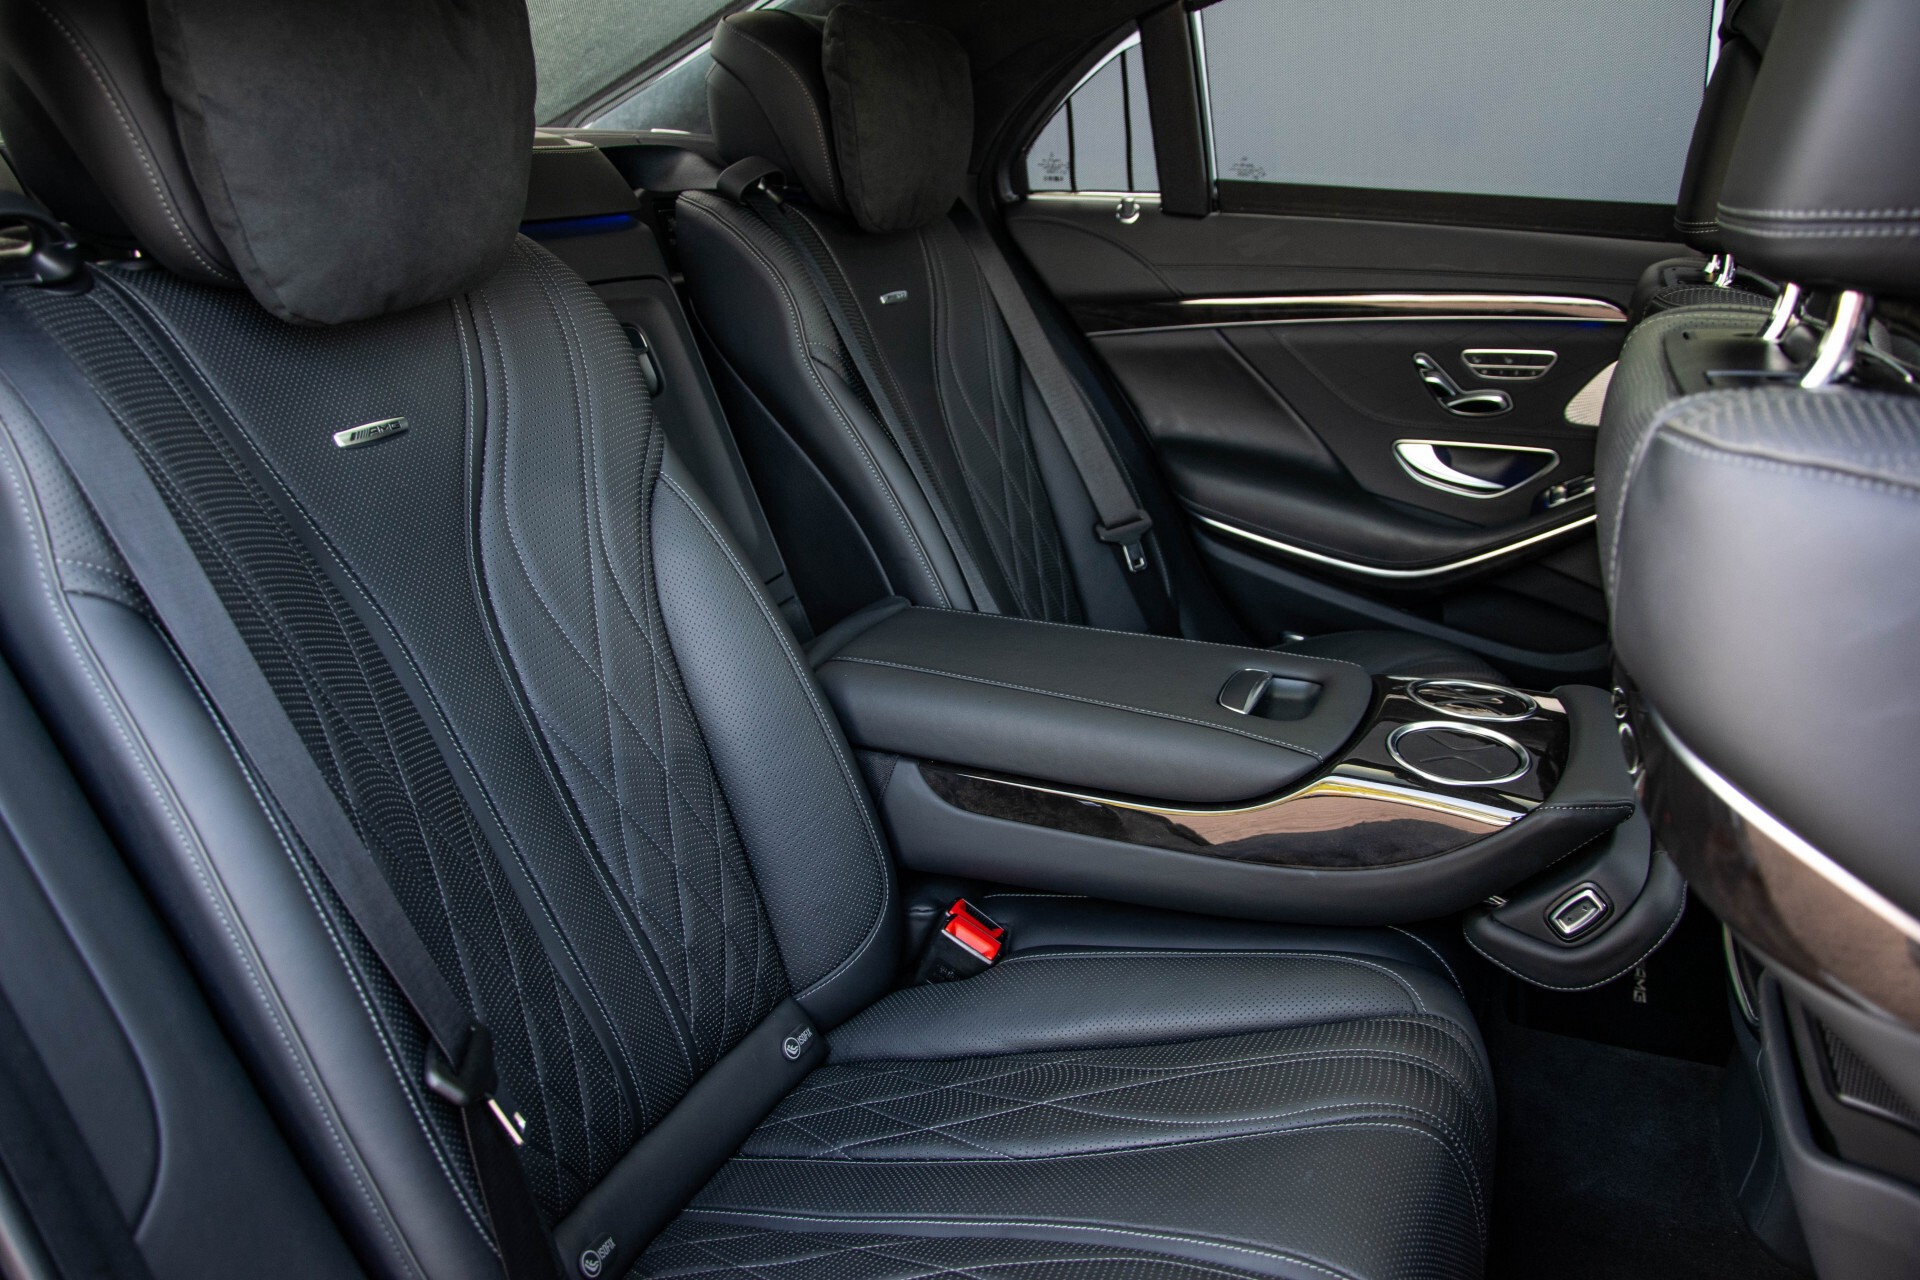 Mercedes-Benz S-Klasse 63 AMG Exclusive/Burmester High-End/Driverspack Aut7 Foto 5